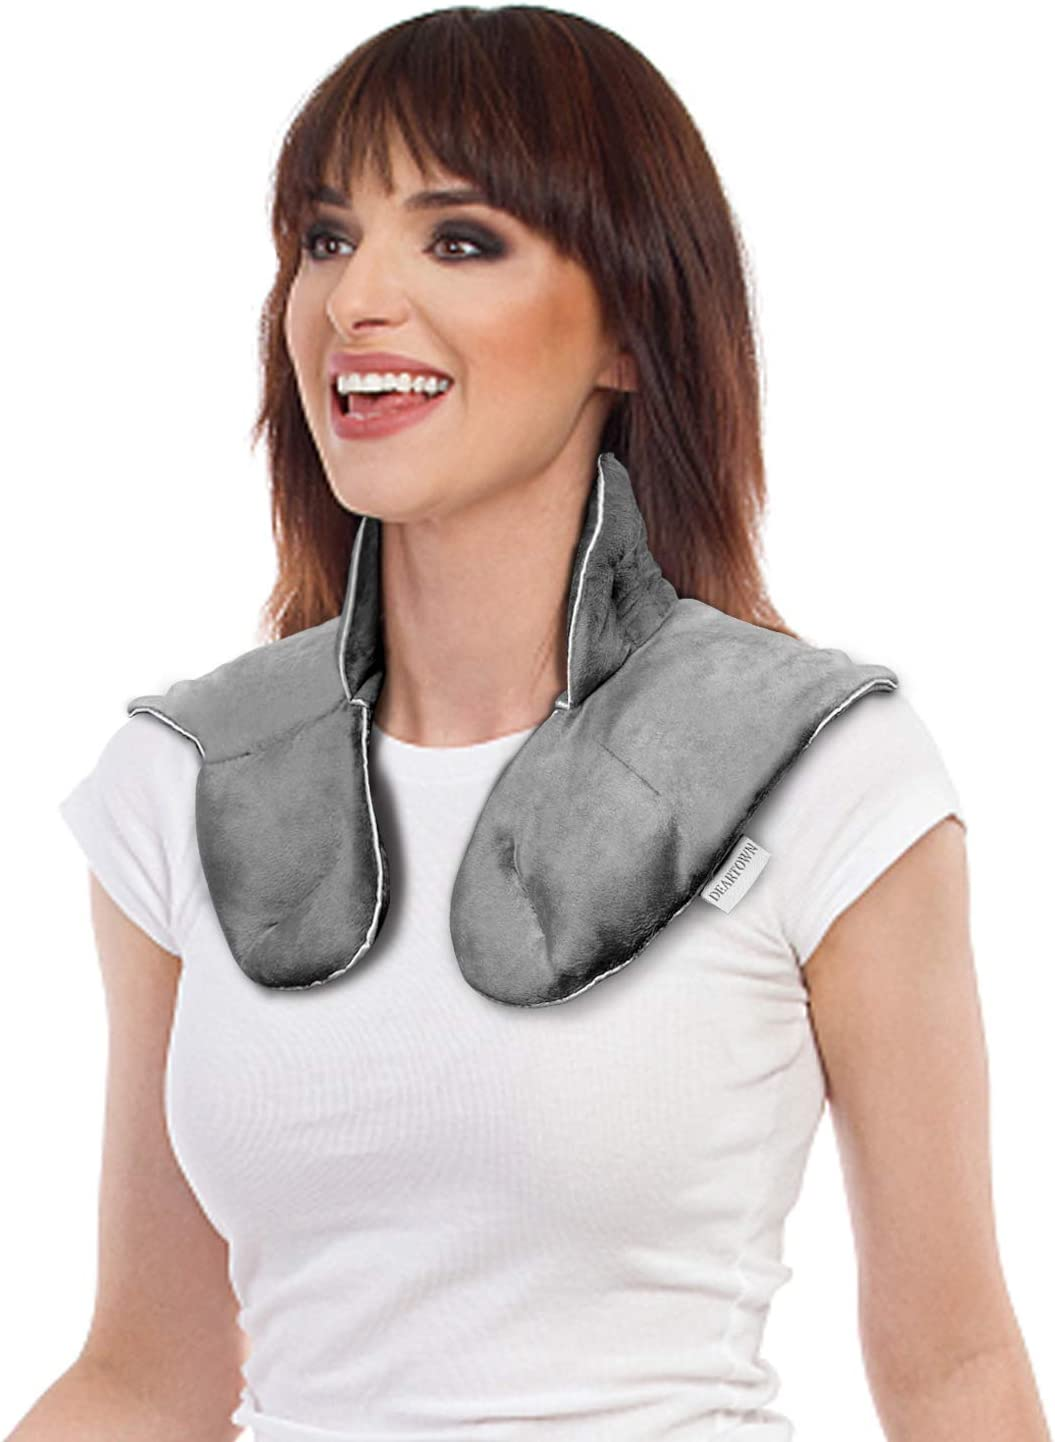 DEARTOWN Weighted Neck Shouder Wrap for Targeting Stress, Tension and Headache Relief (3.5LB, Navy) (3.5LB, Grey)